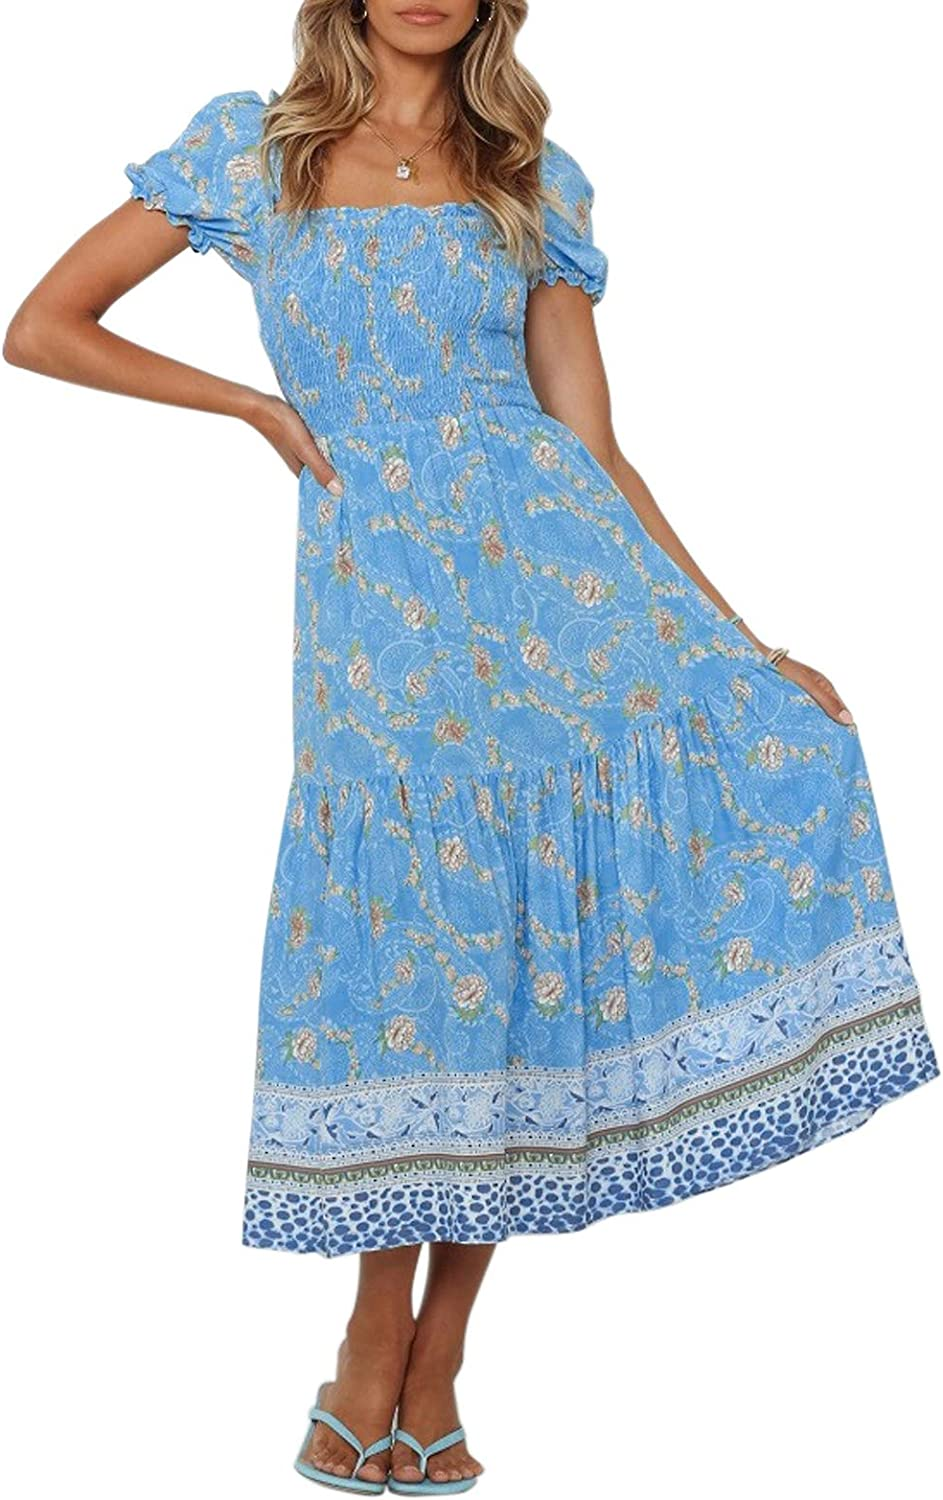 fits S M classic womans dress Vintage Beige blue green colored flower printed sleeveless flowy summer maxi dress with waist ribbon